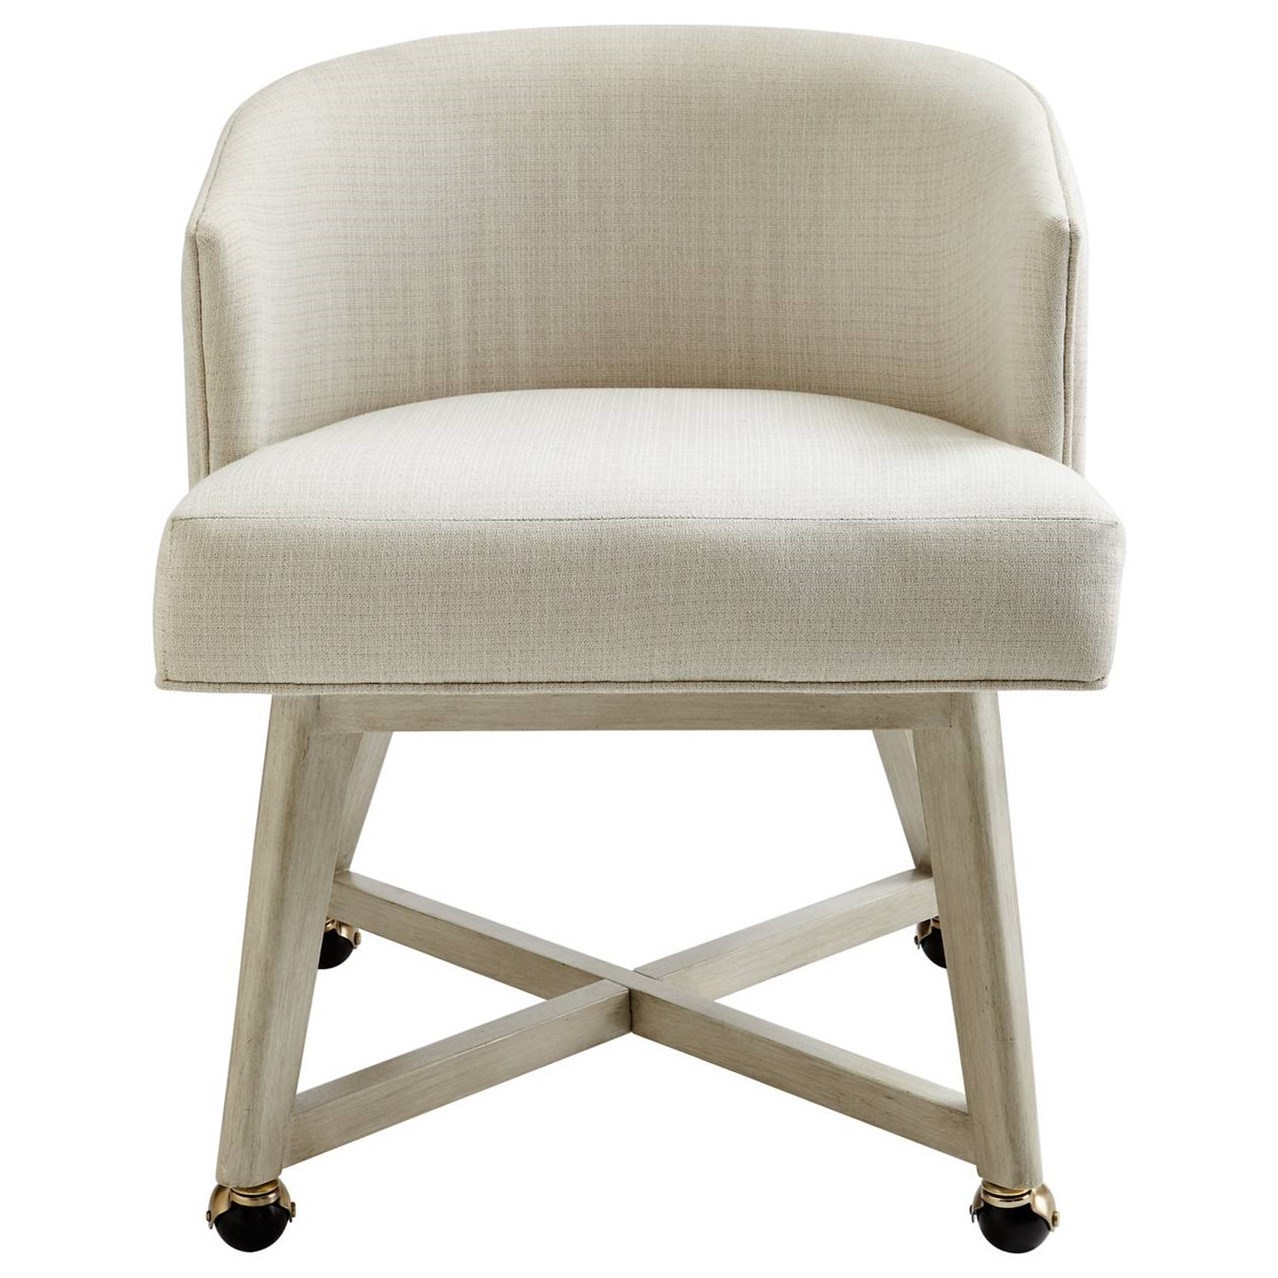 Stanley Furniture Coastal Living Oasis Carlyle Club Chair - Item Number: 527-51-69